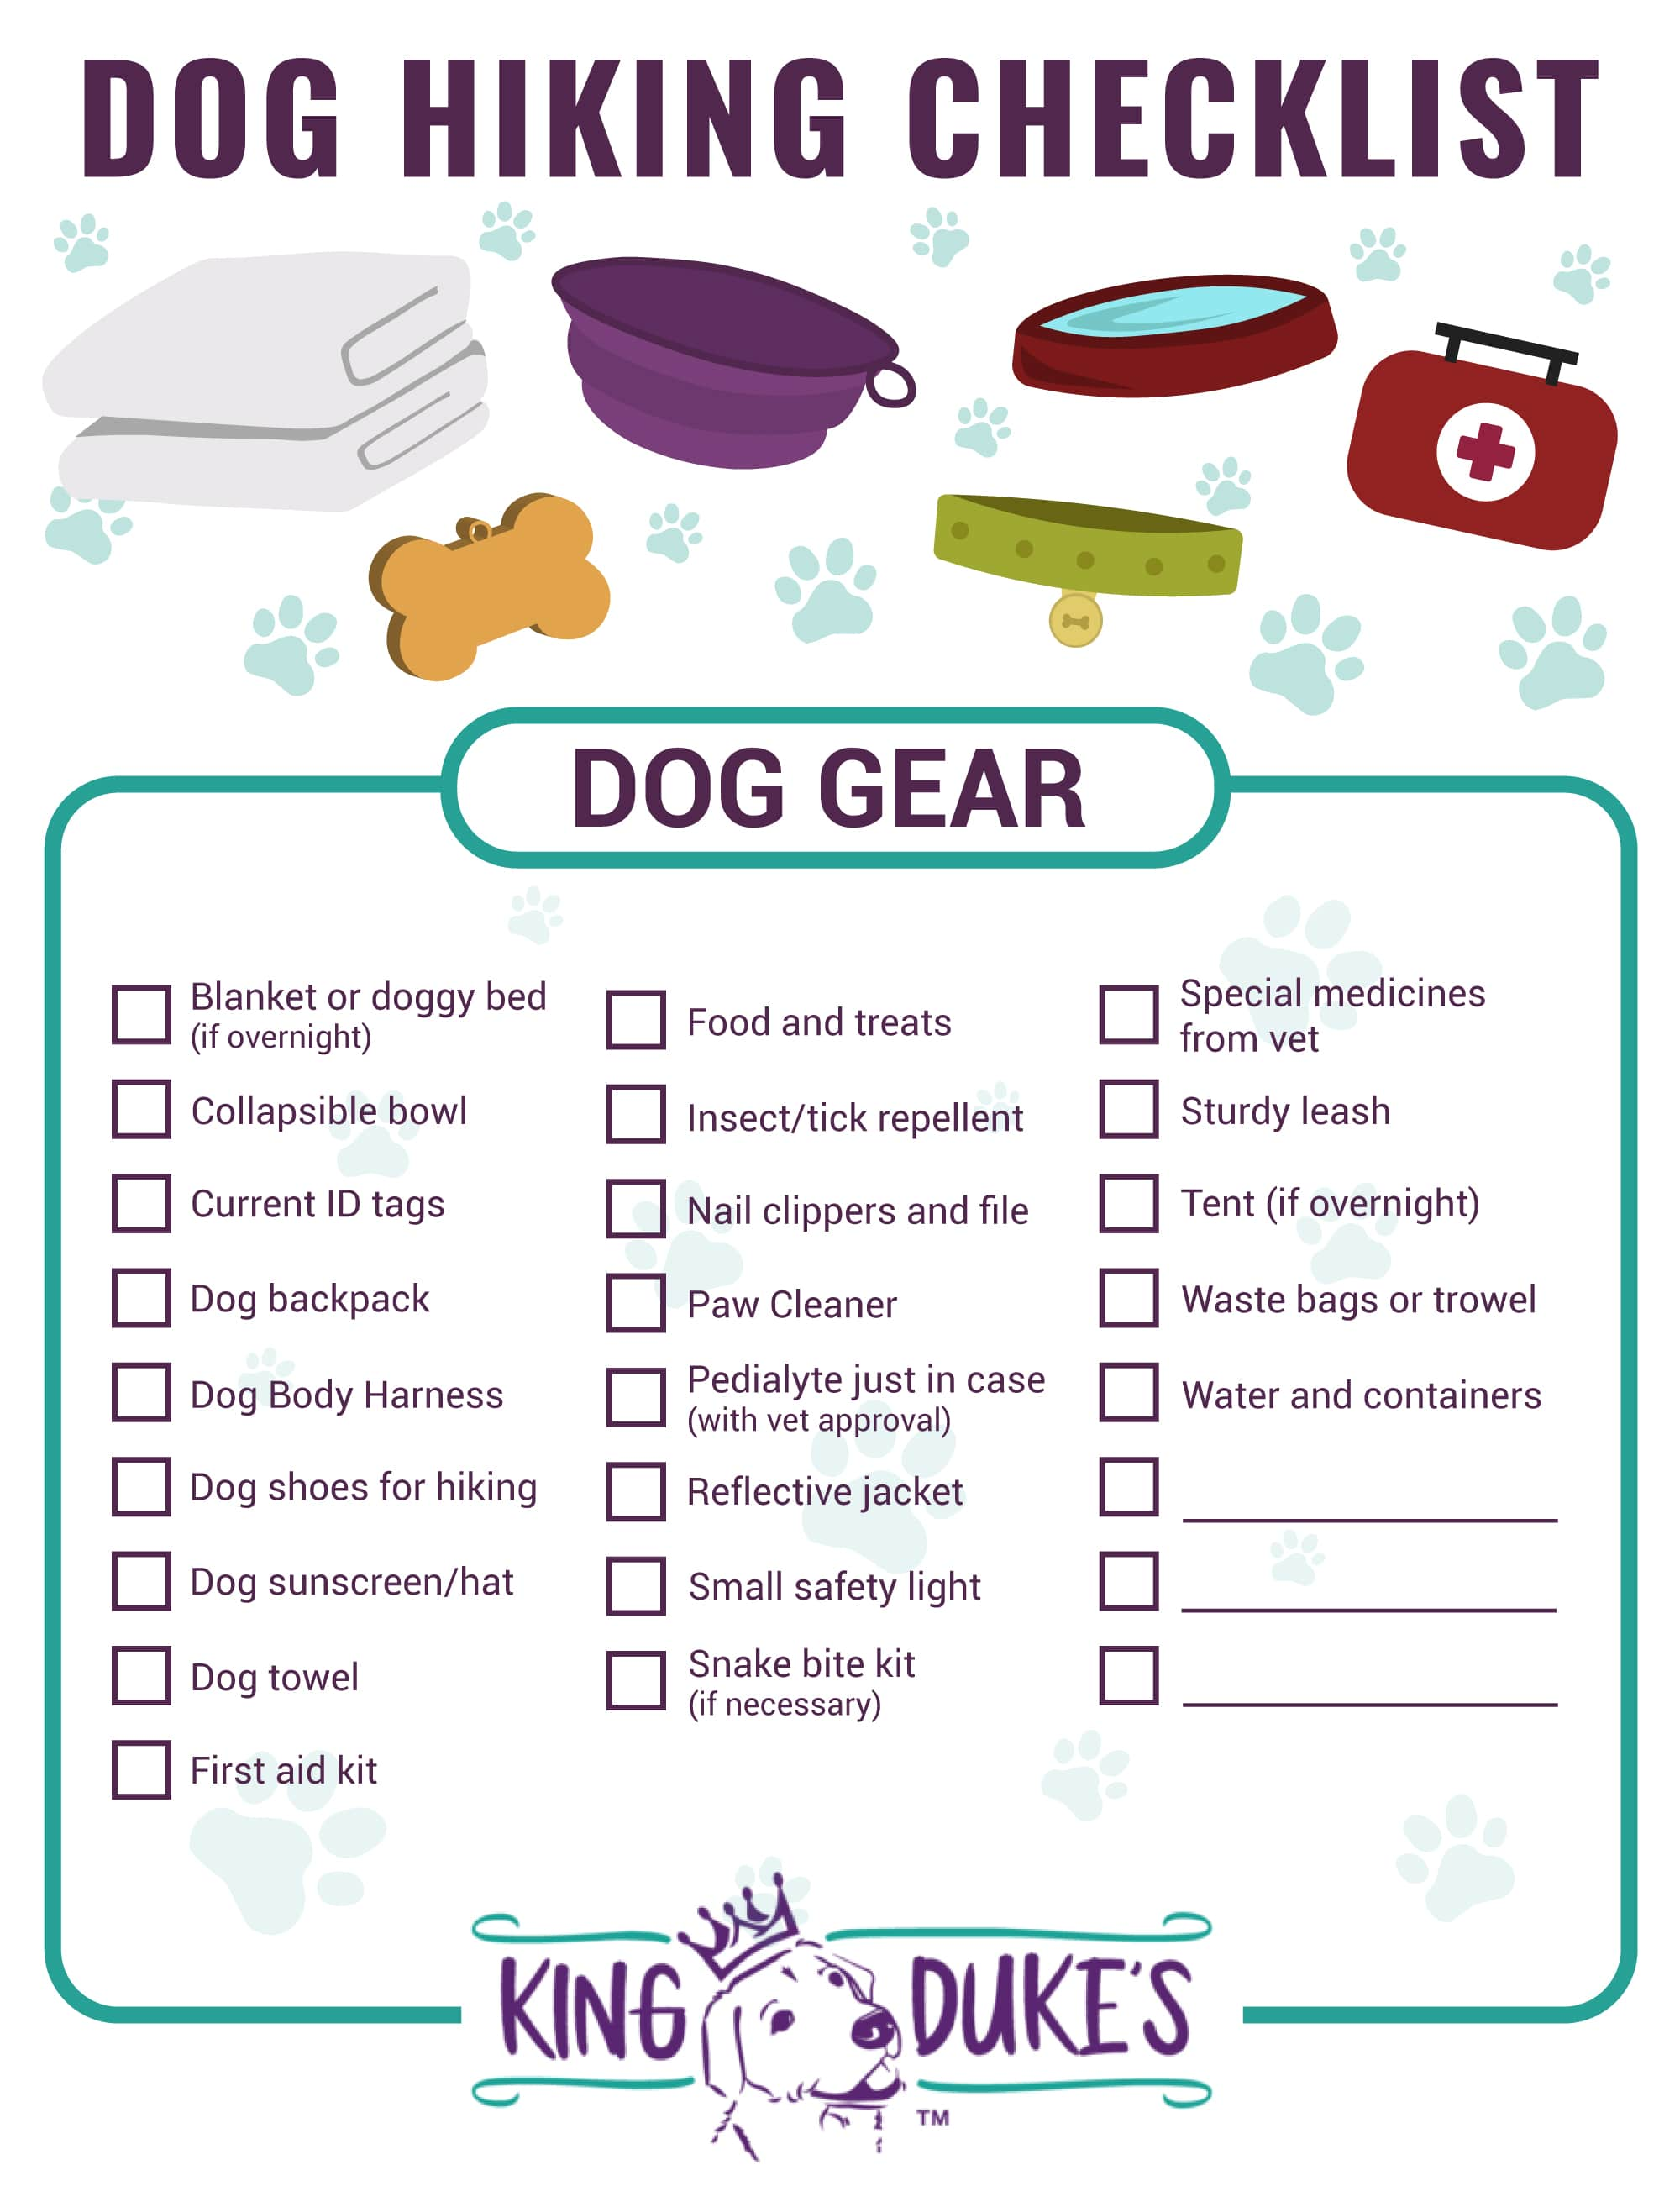 Dog Hiking Checklist with Dog Hiking Gear